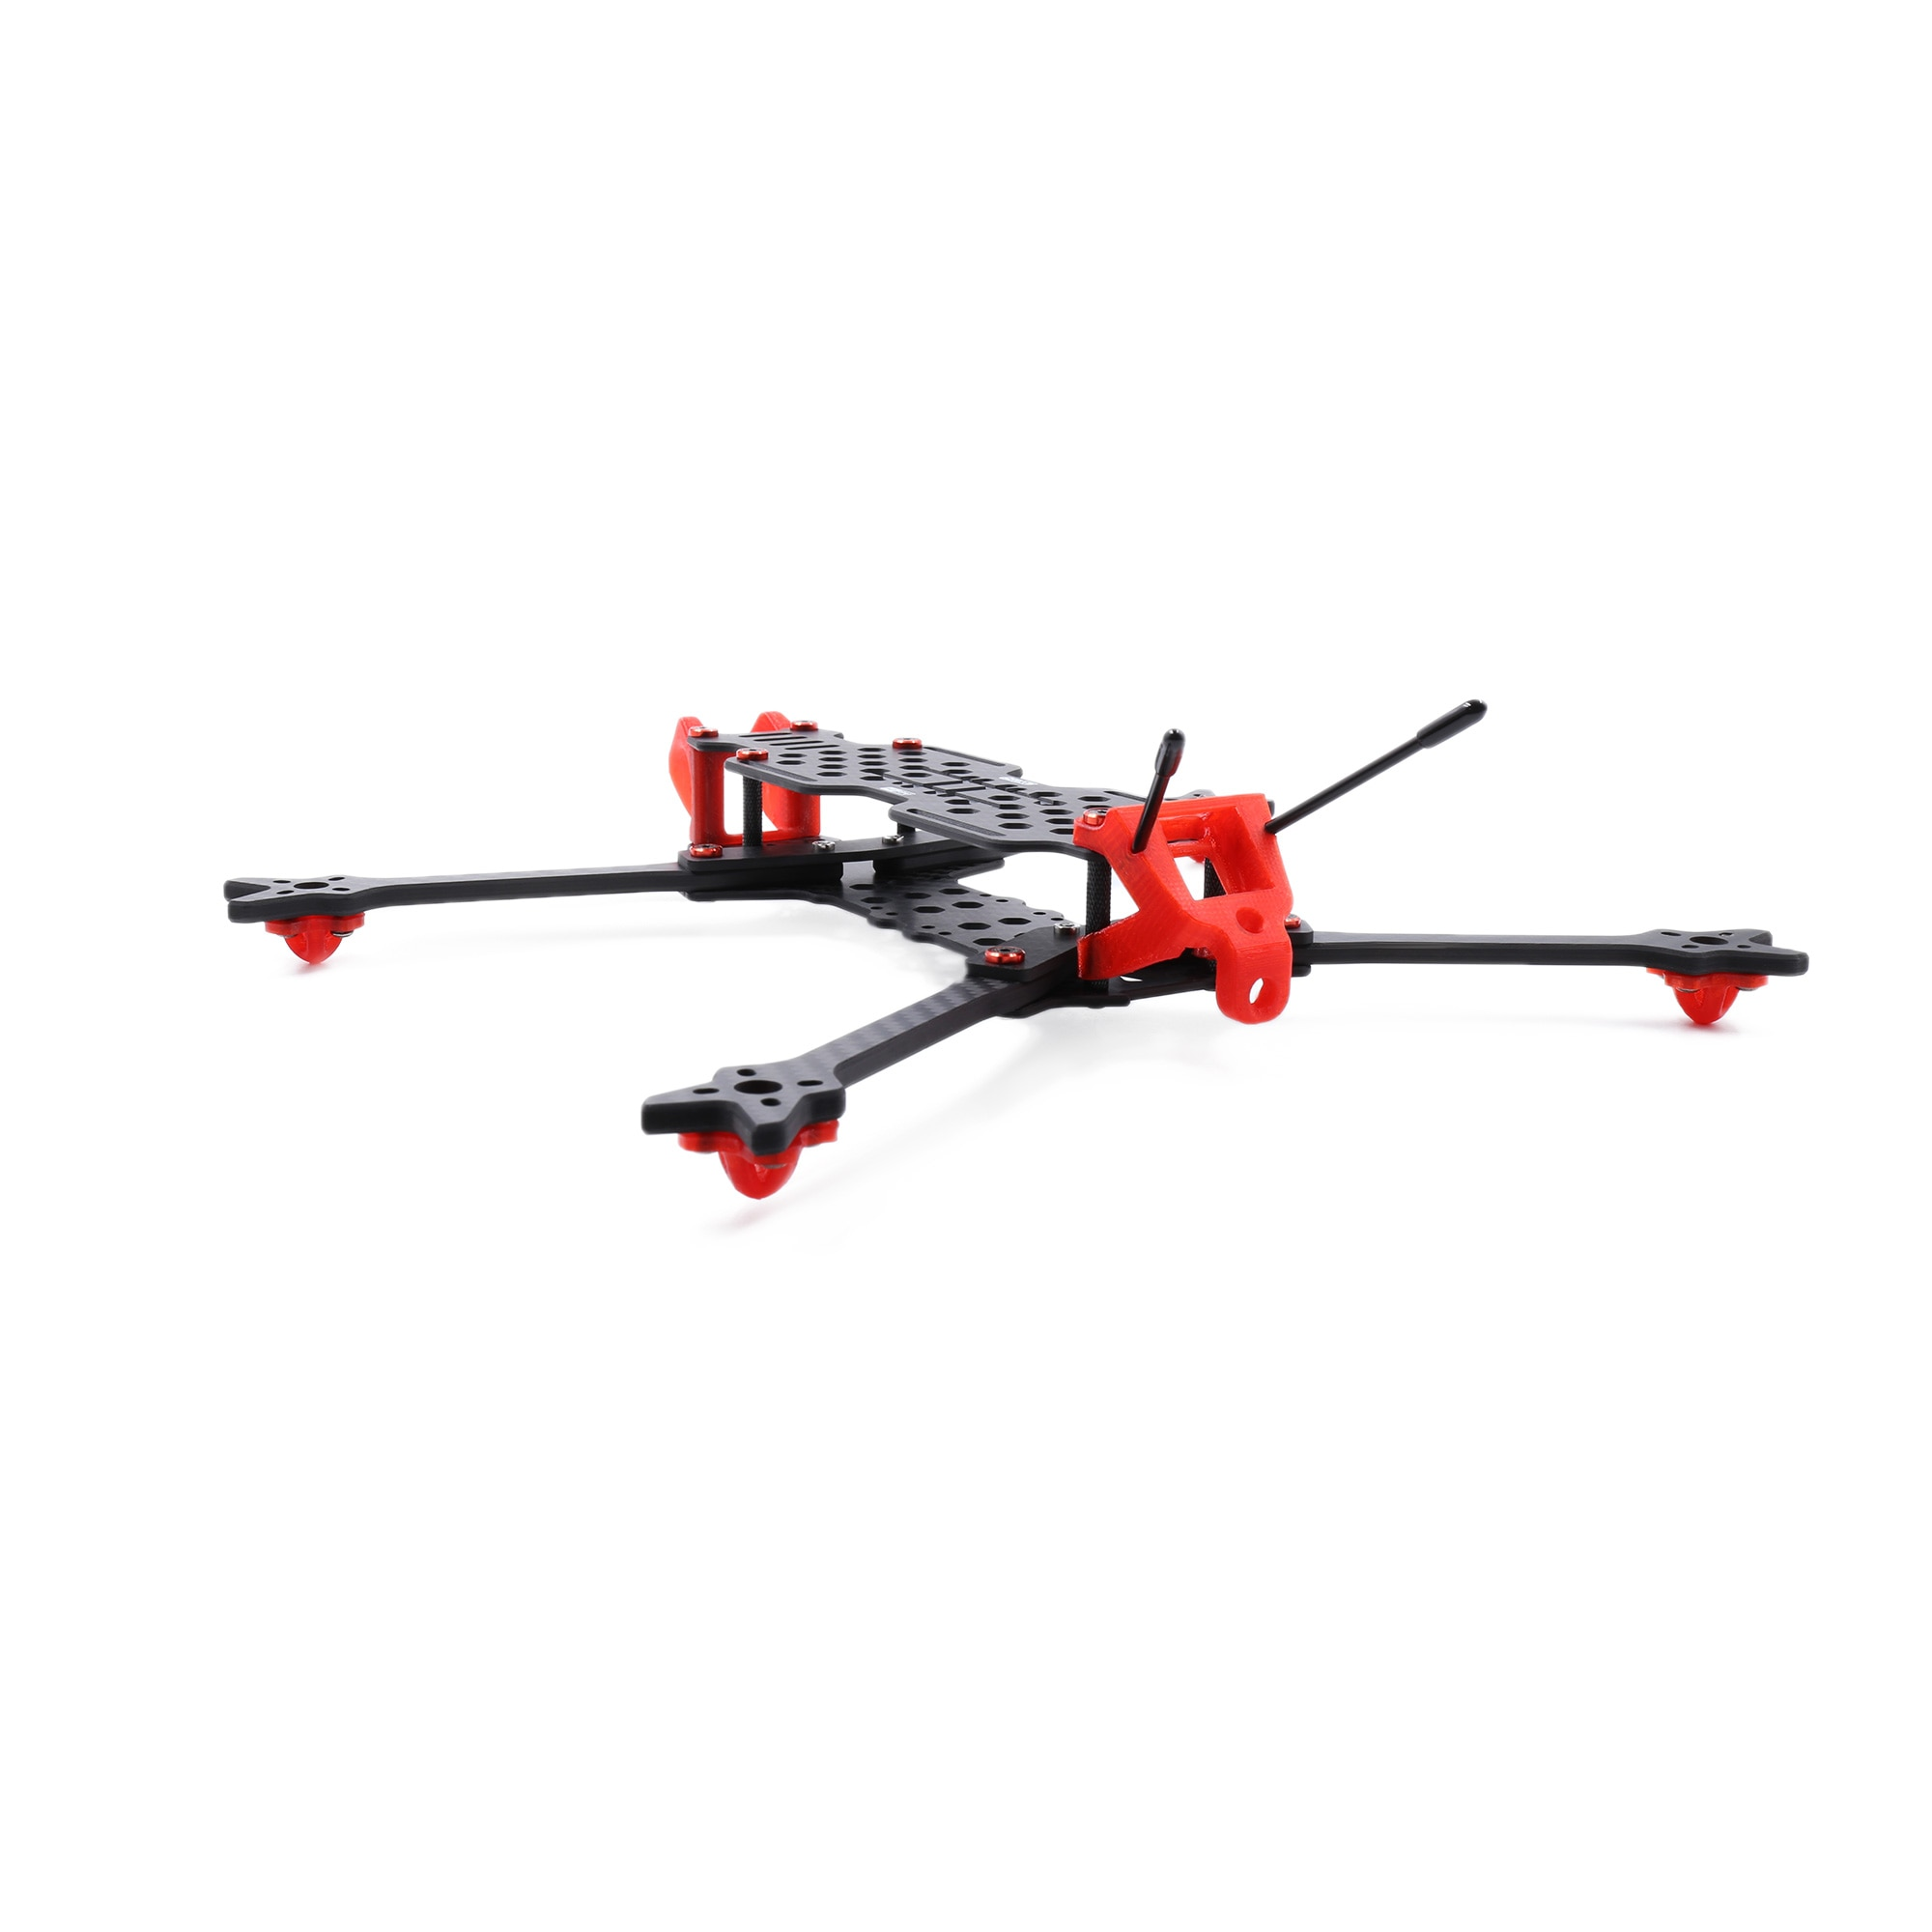 GEPRC GEP-LC7HD Frame Suitable For Crocodile7 HD Carbon Fiber Accessories For RC DIY FPV Quadcopter Drone Replacement Parts enlarge